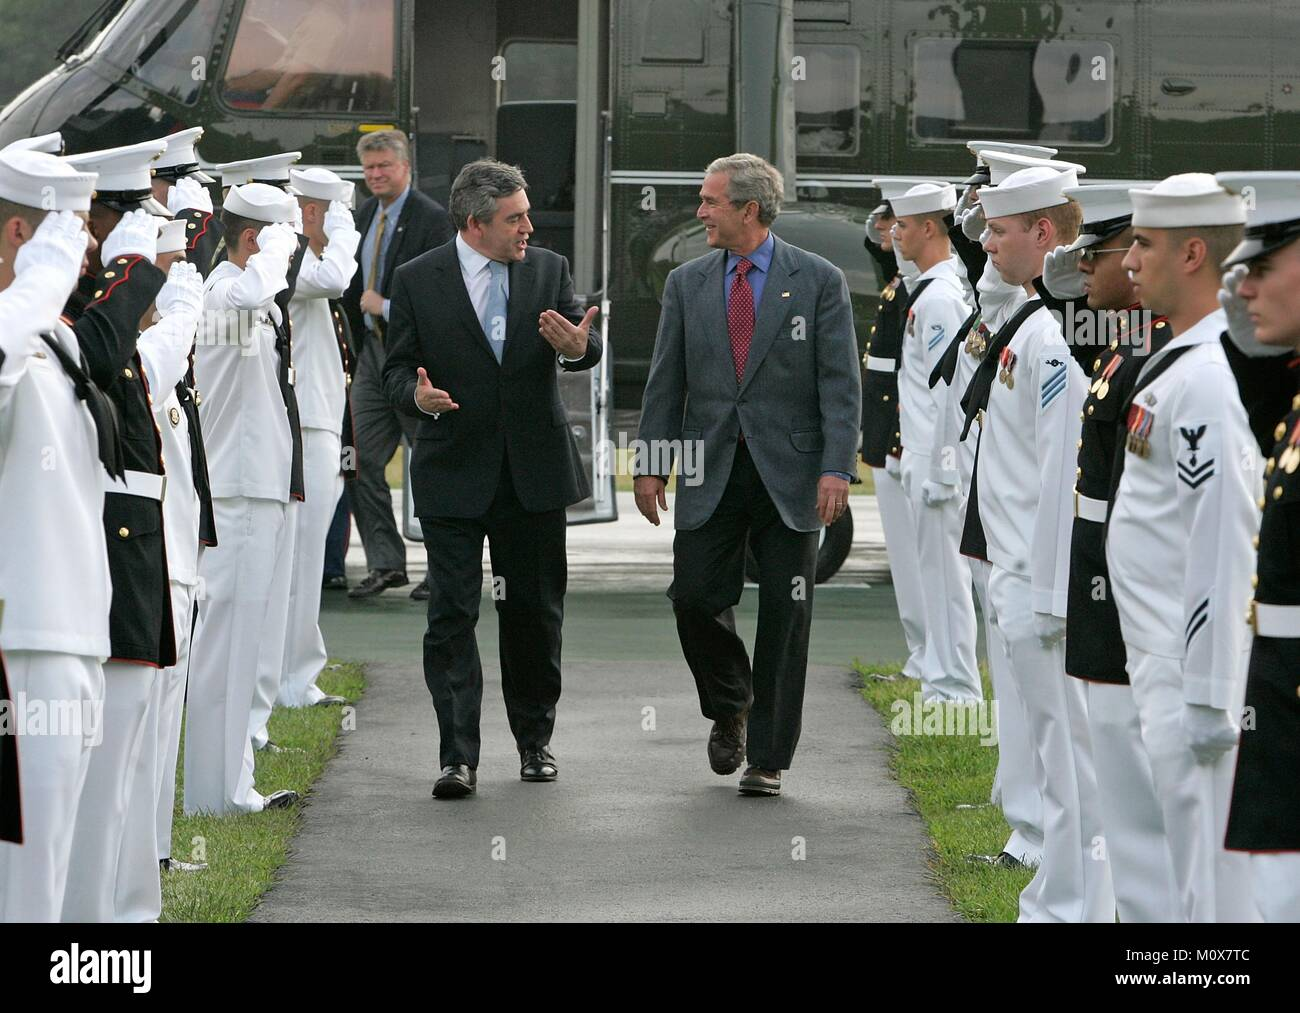 CAMP DAVID, MD - JULY 29: (AFP OUT) U.S. President George W. Bush (R) greets British Prime Minister Gordon Brown - Stock Image